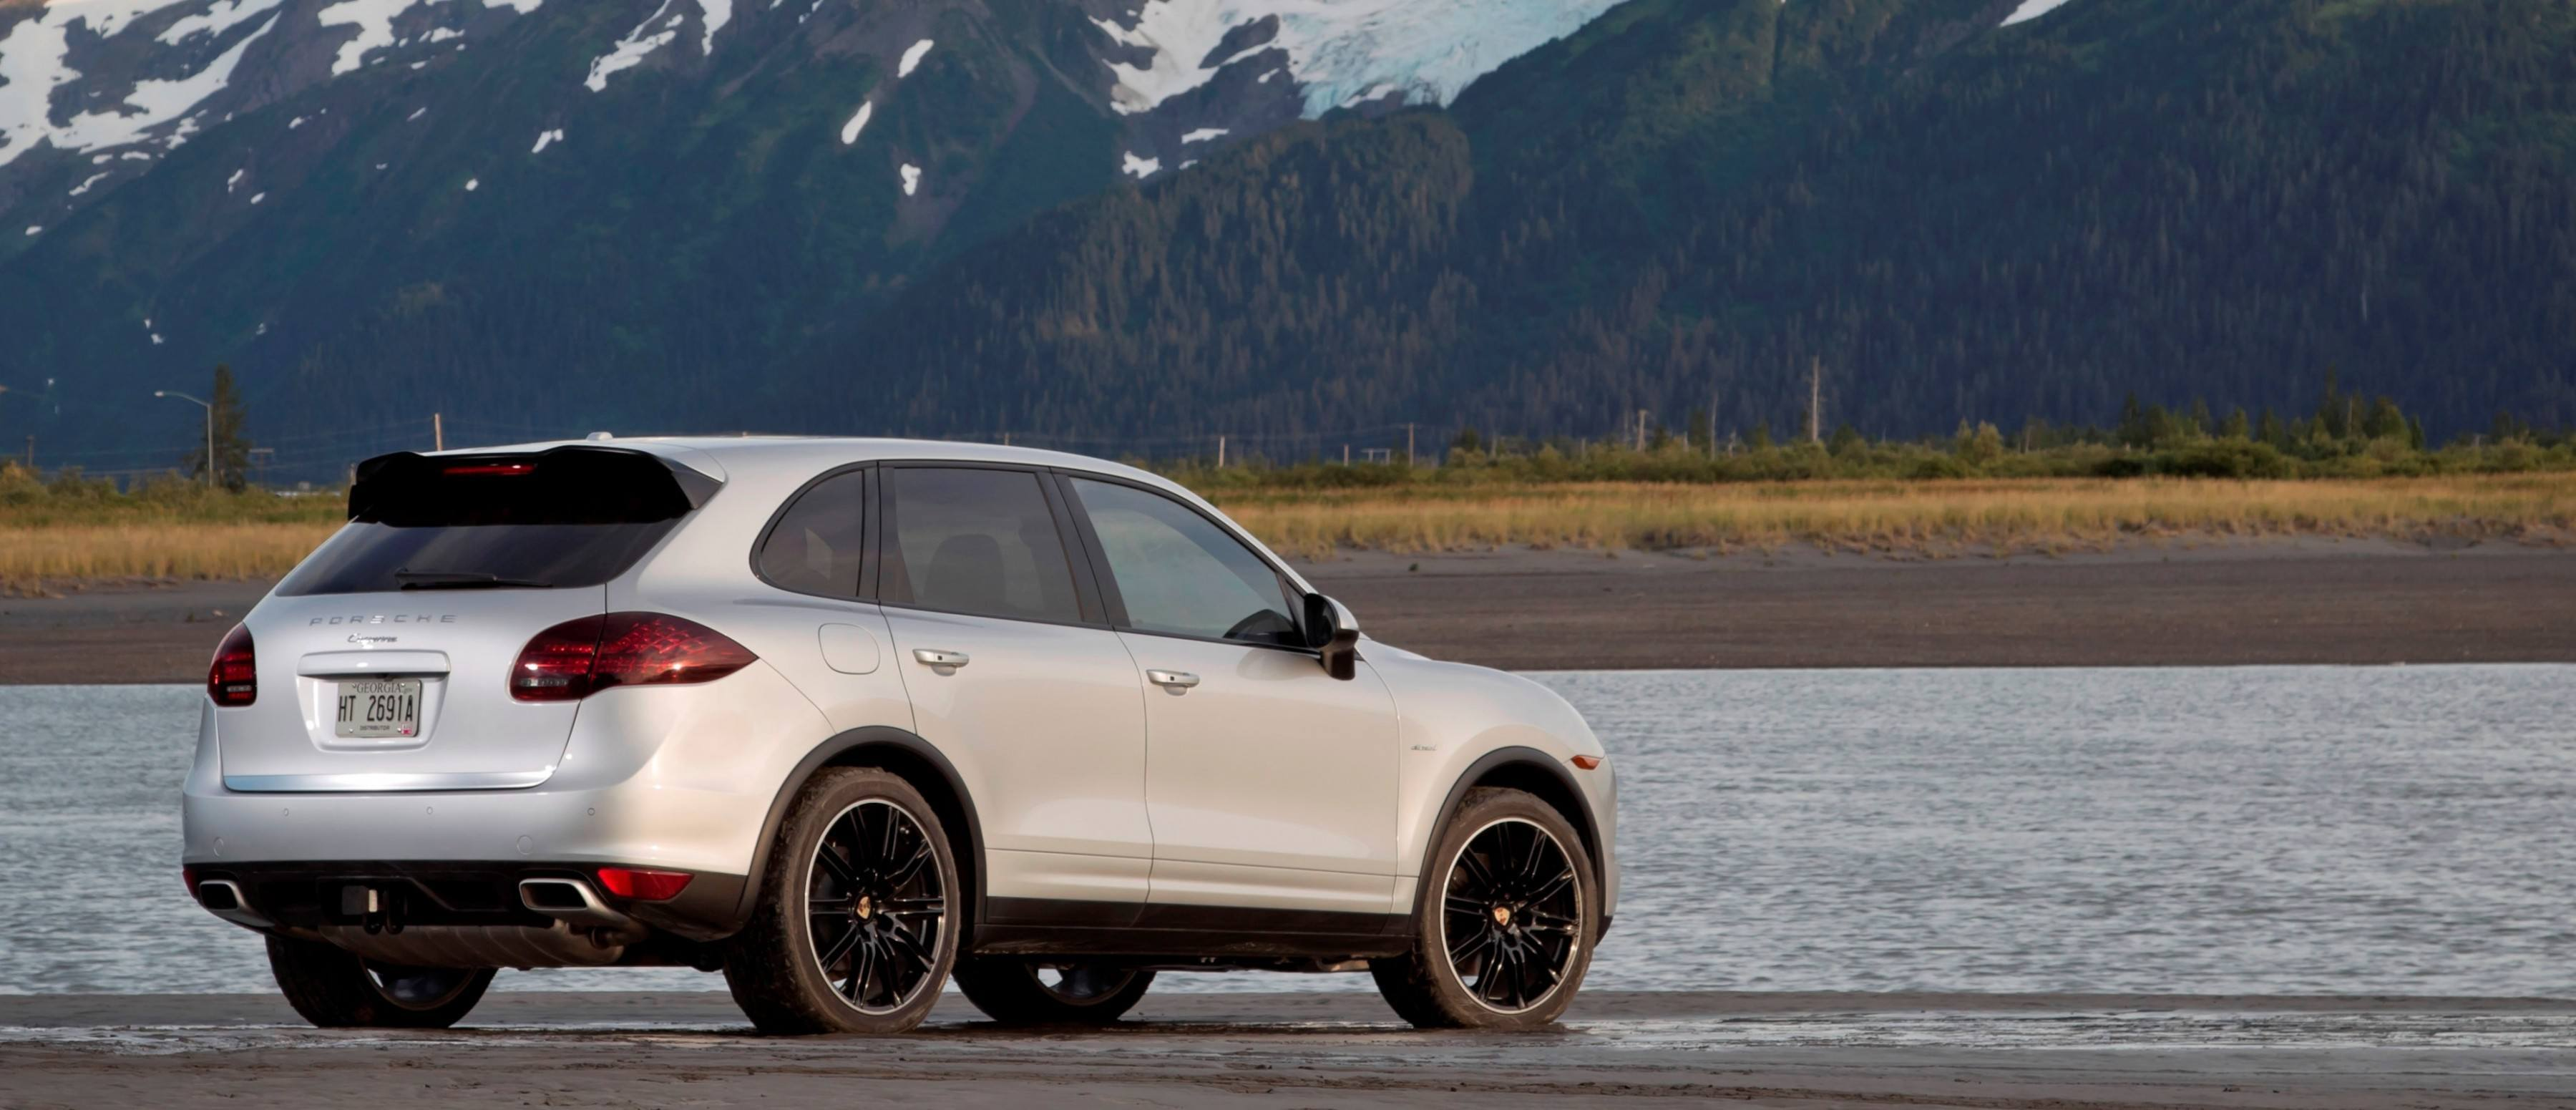 new for 2014 porsche cayenne turbo s leads 8 strong line pricing and style comparisons by. Black Bedroom Furniture Sets. Home Design Ideas